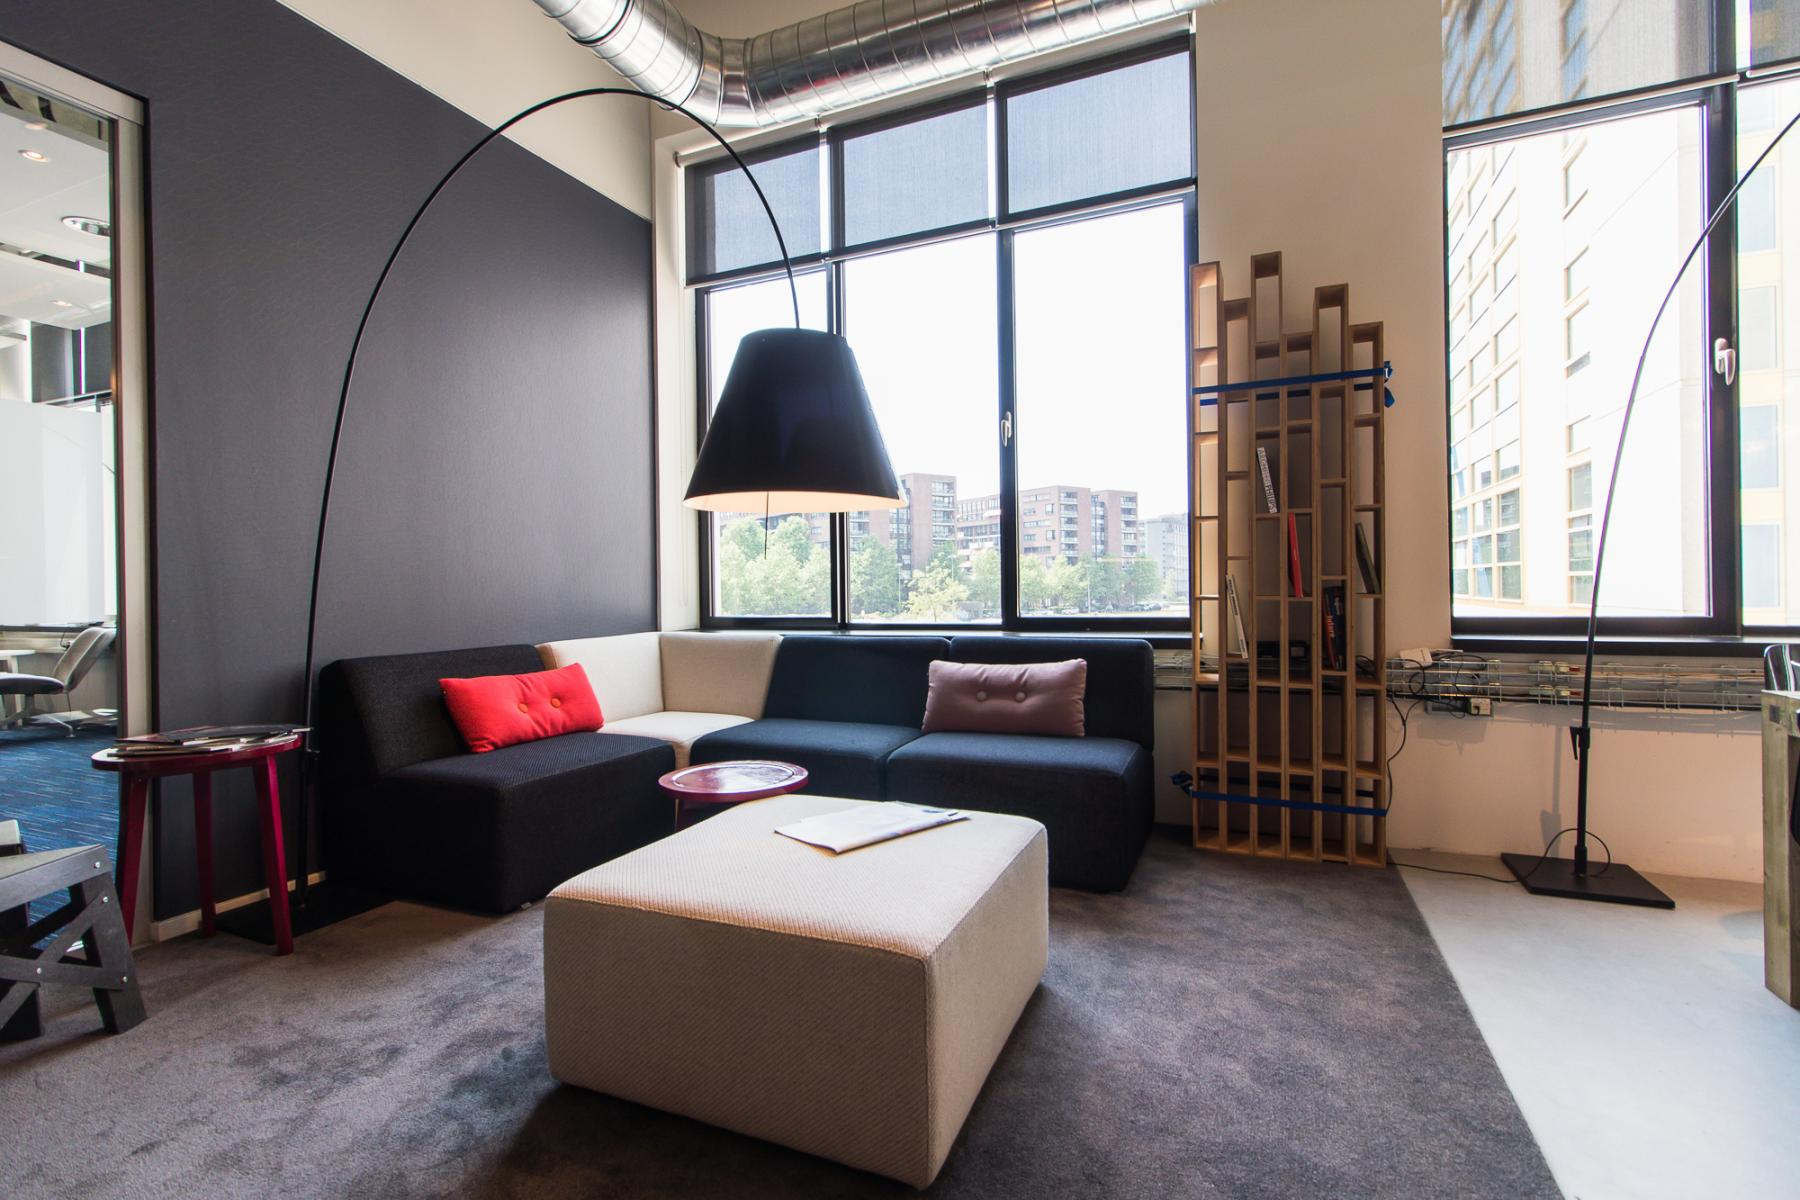 Multiple lounge places in the office building